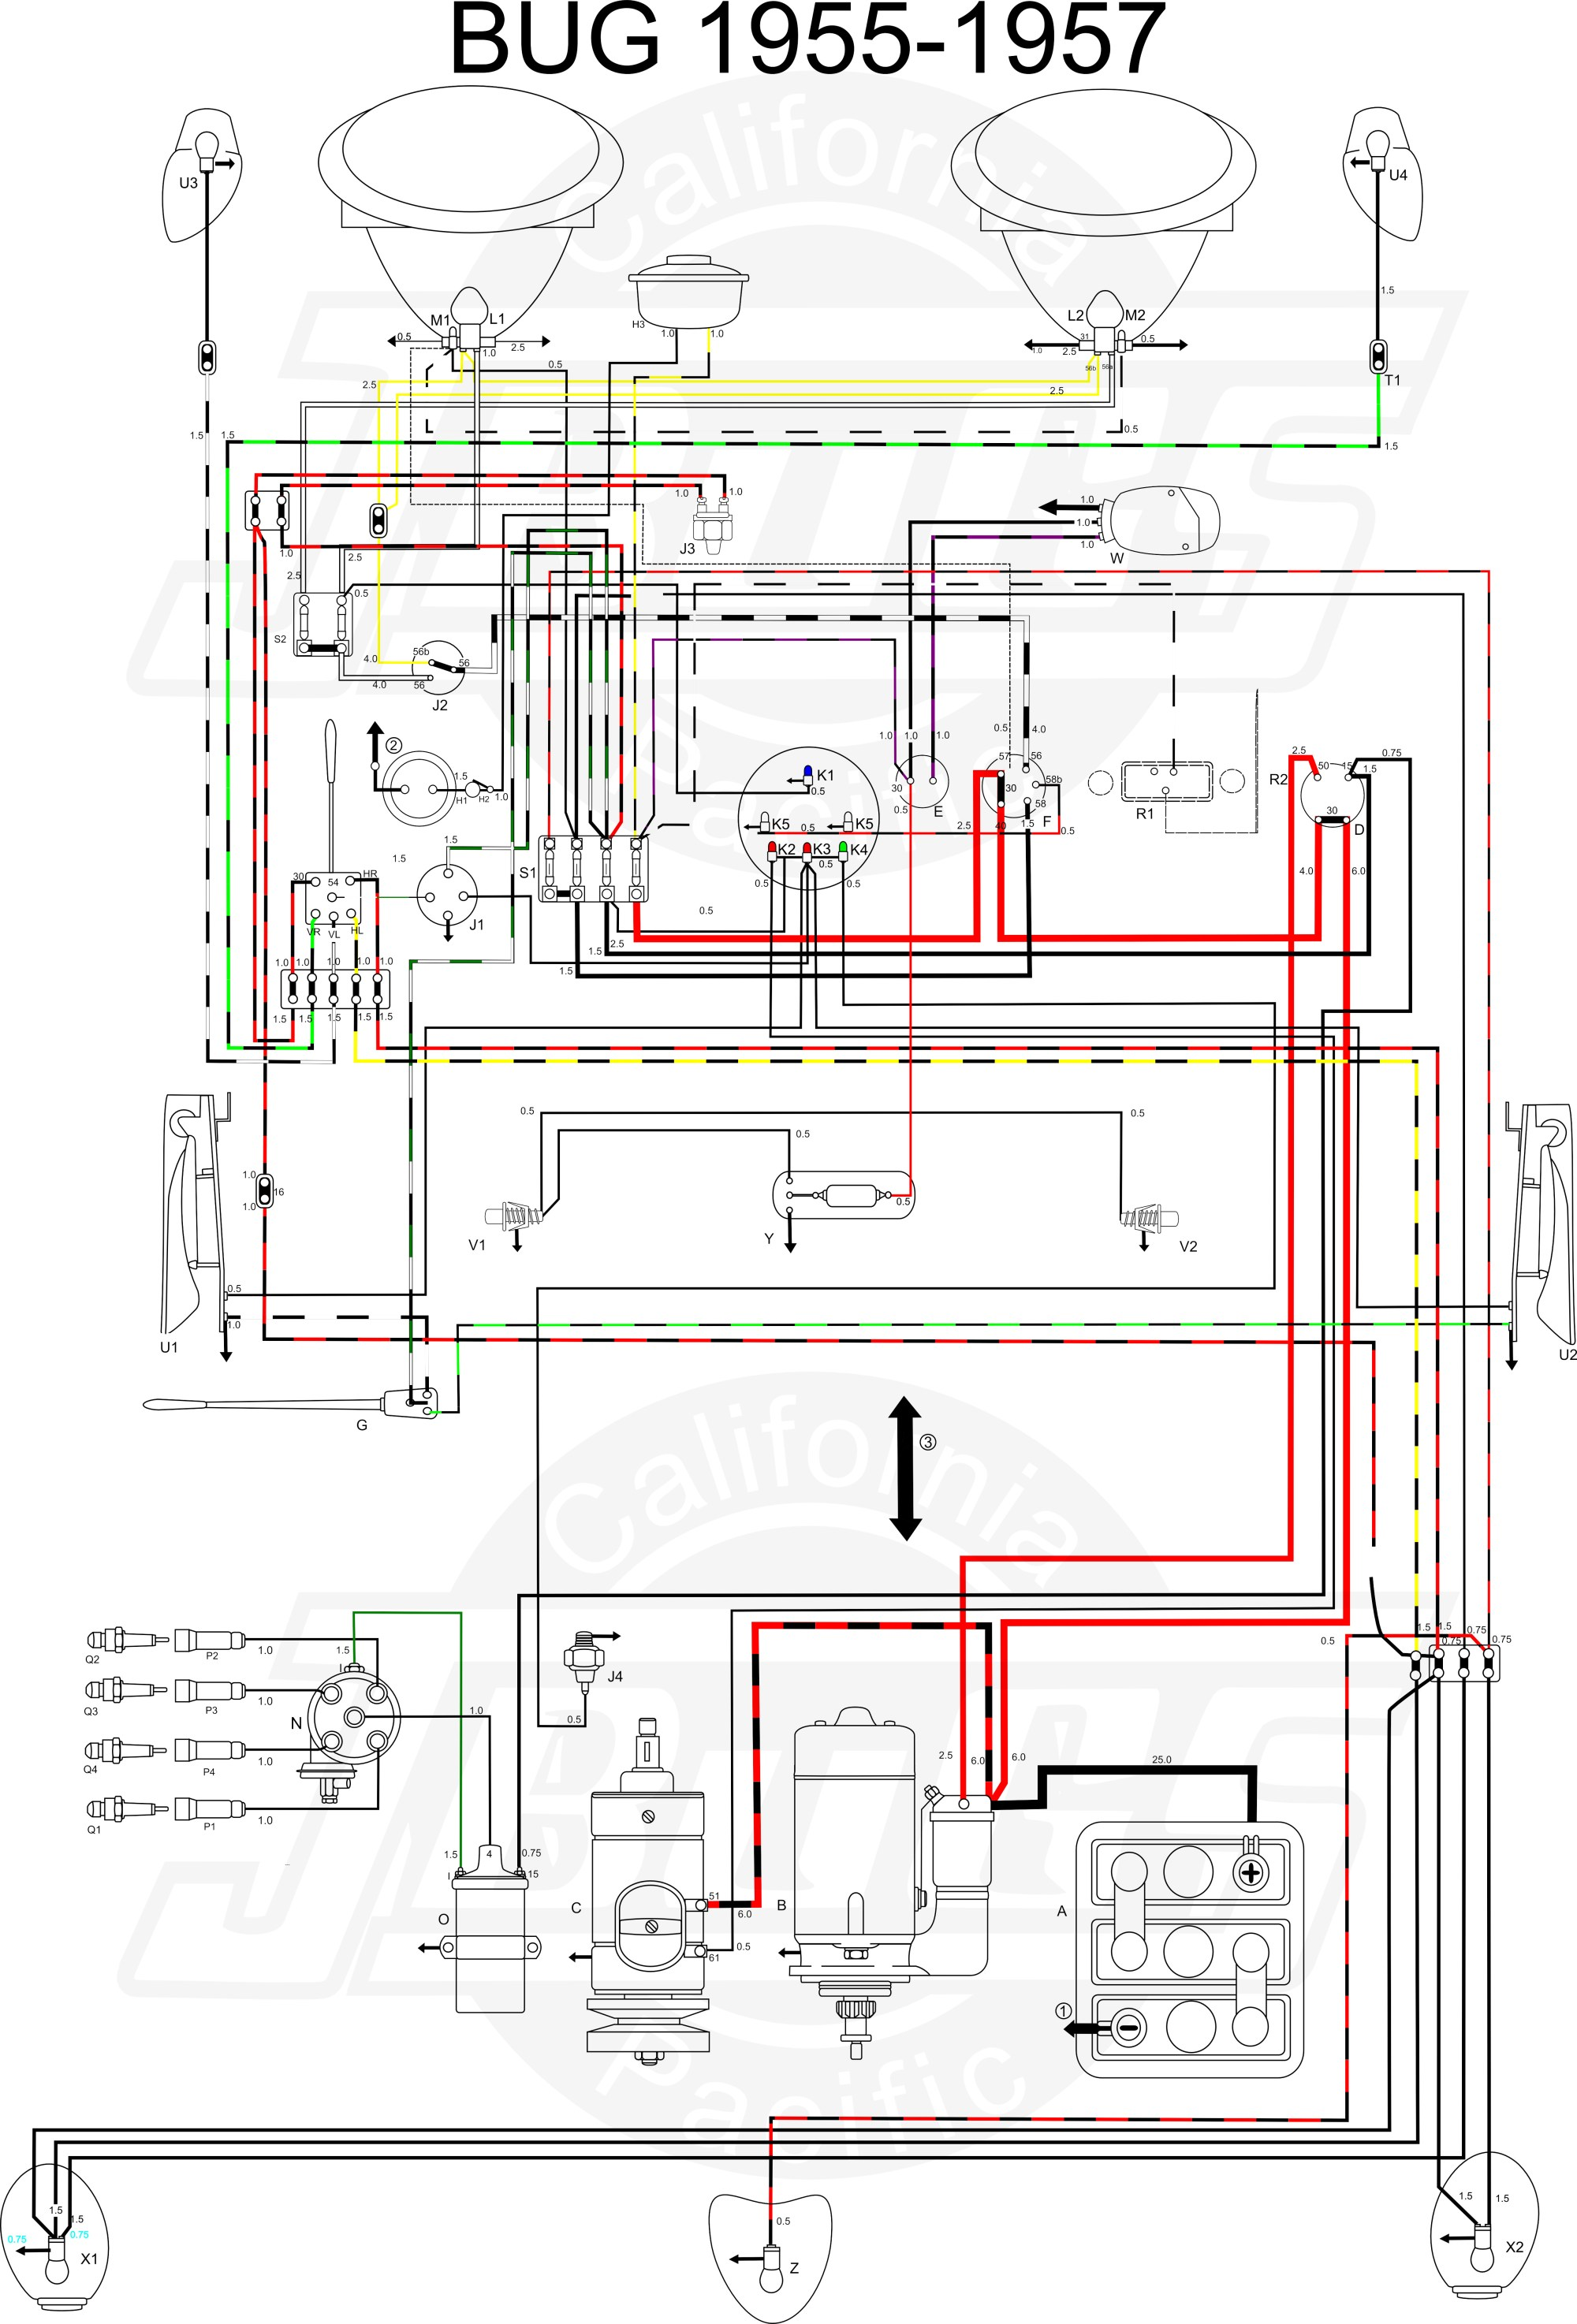 hight resolution of dune buggy engine schematics wiring diagram yer dune buggy engine parts list schematics drawings wiring diagram